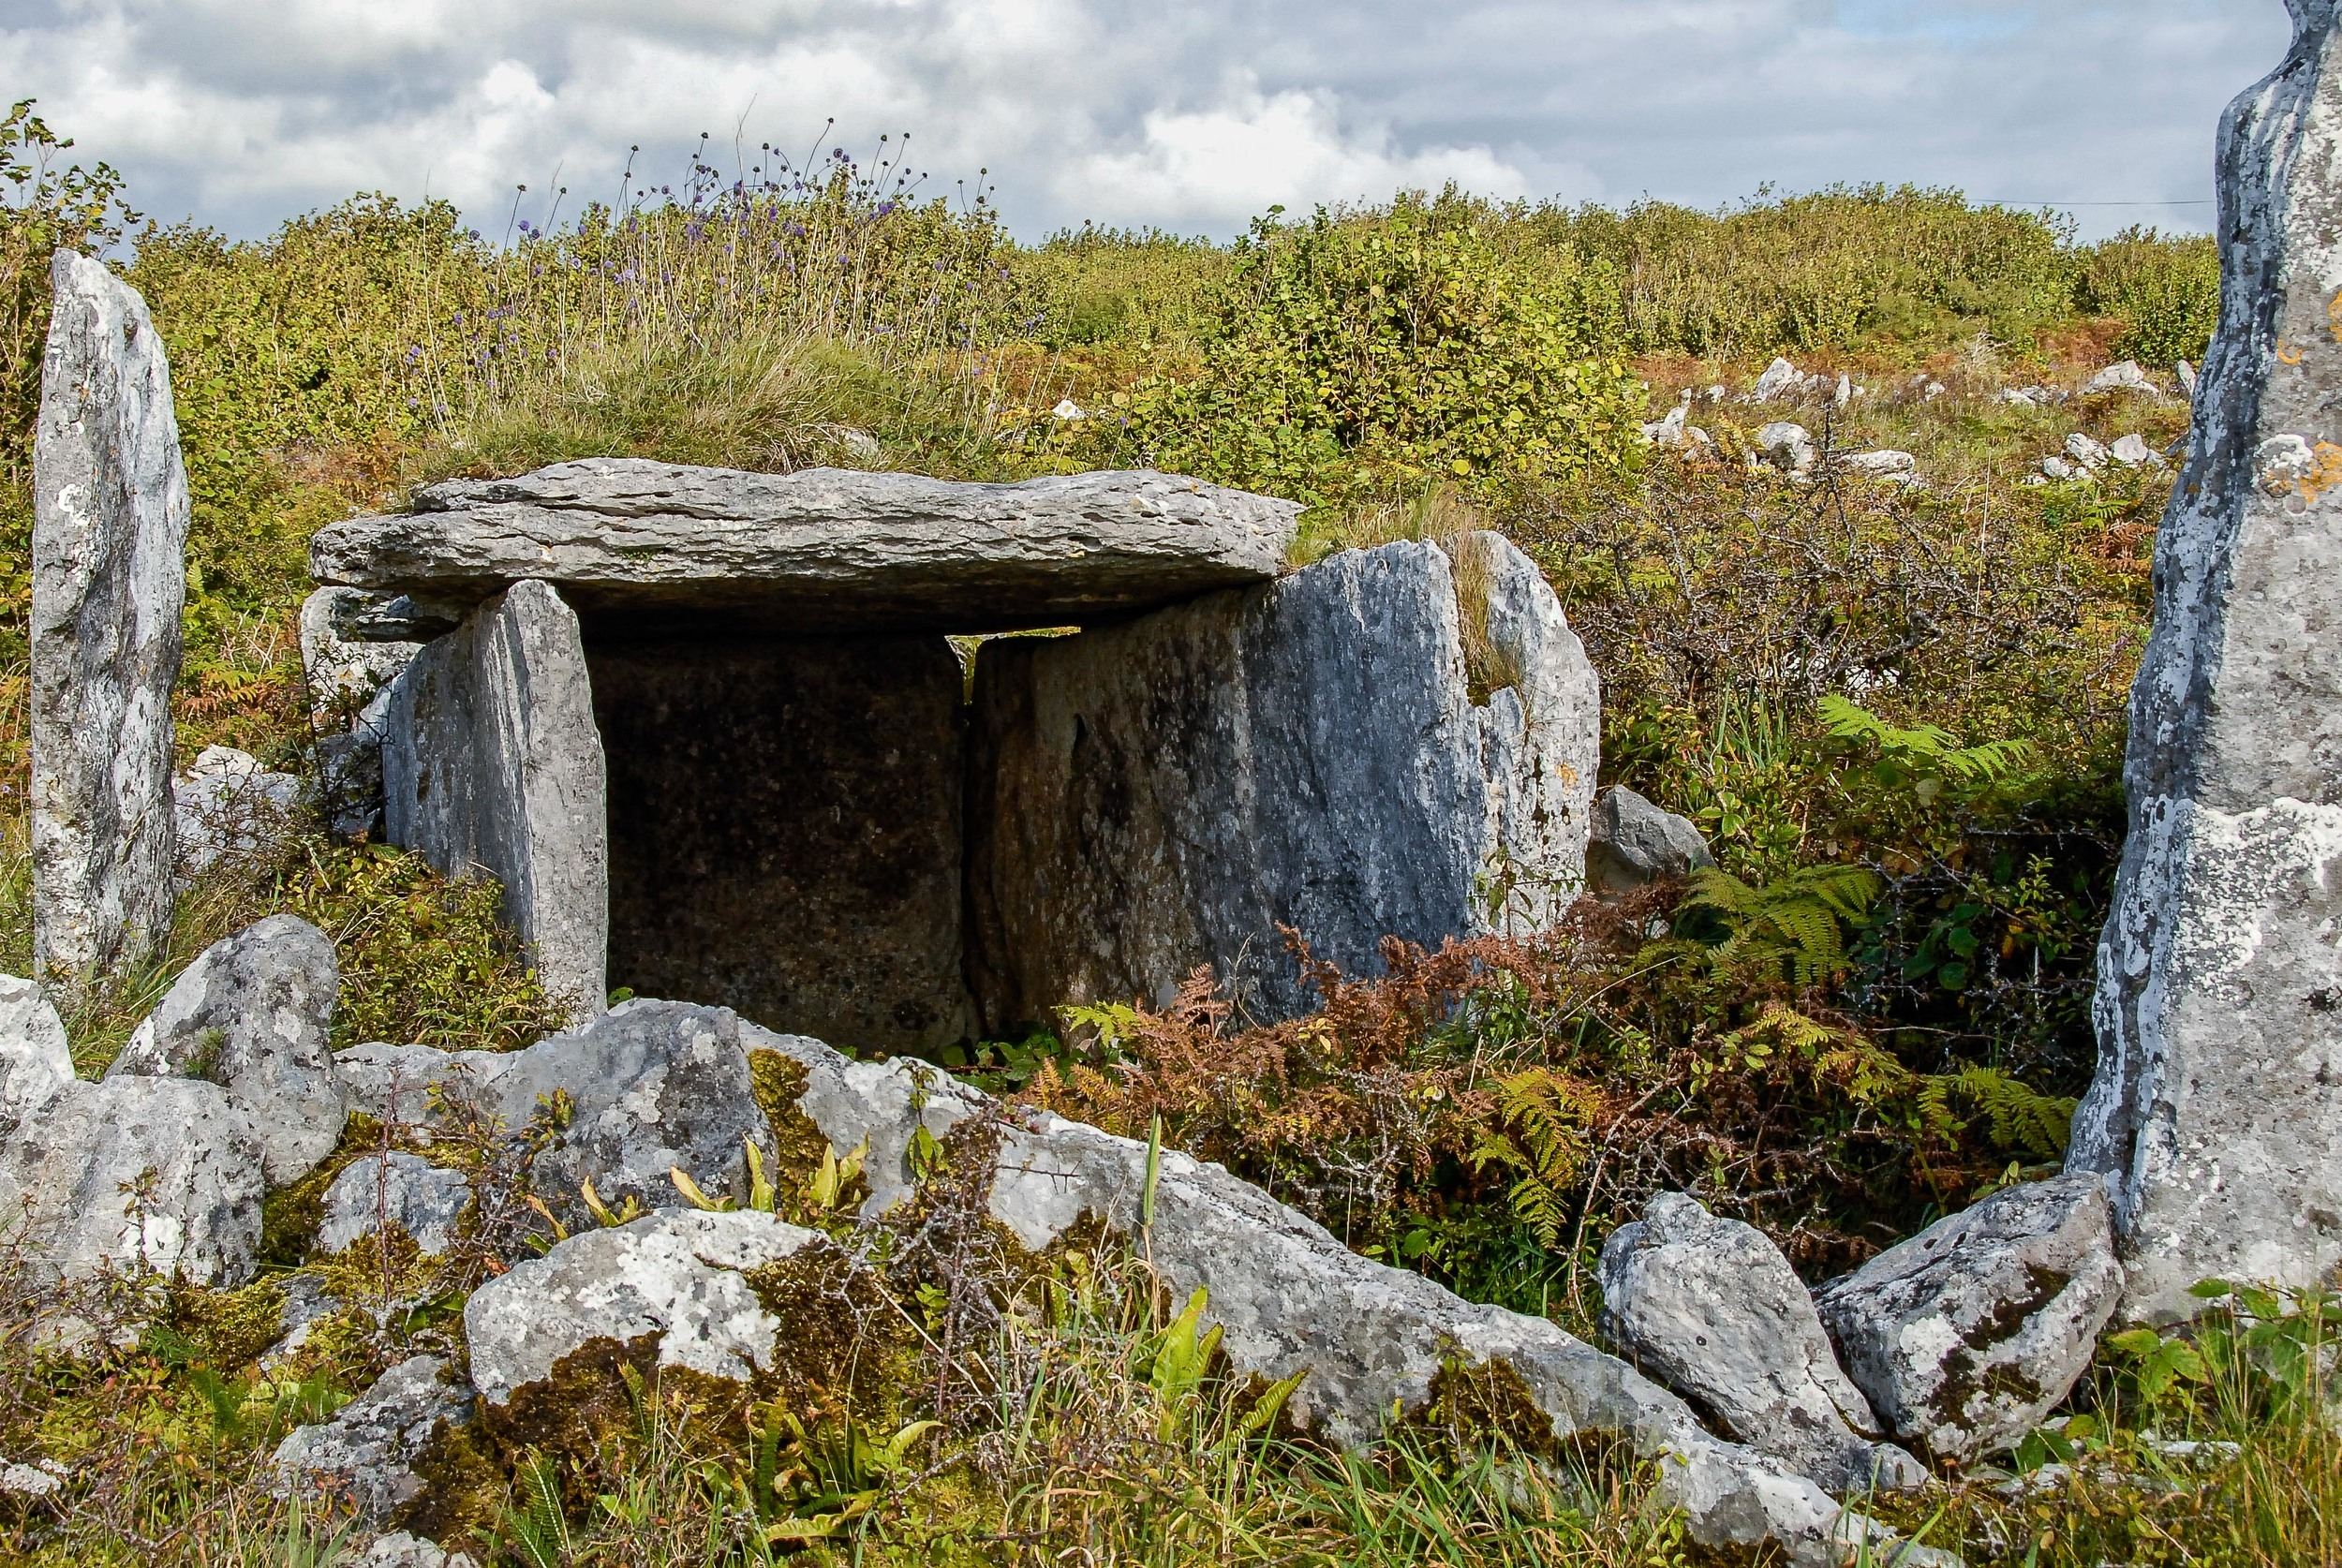 Portal tombs 4,000 years old survive on Patrick McCormick's farmland.